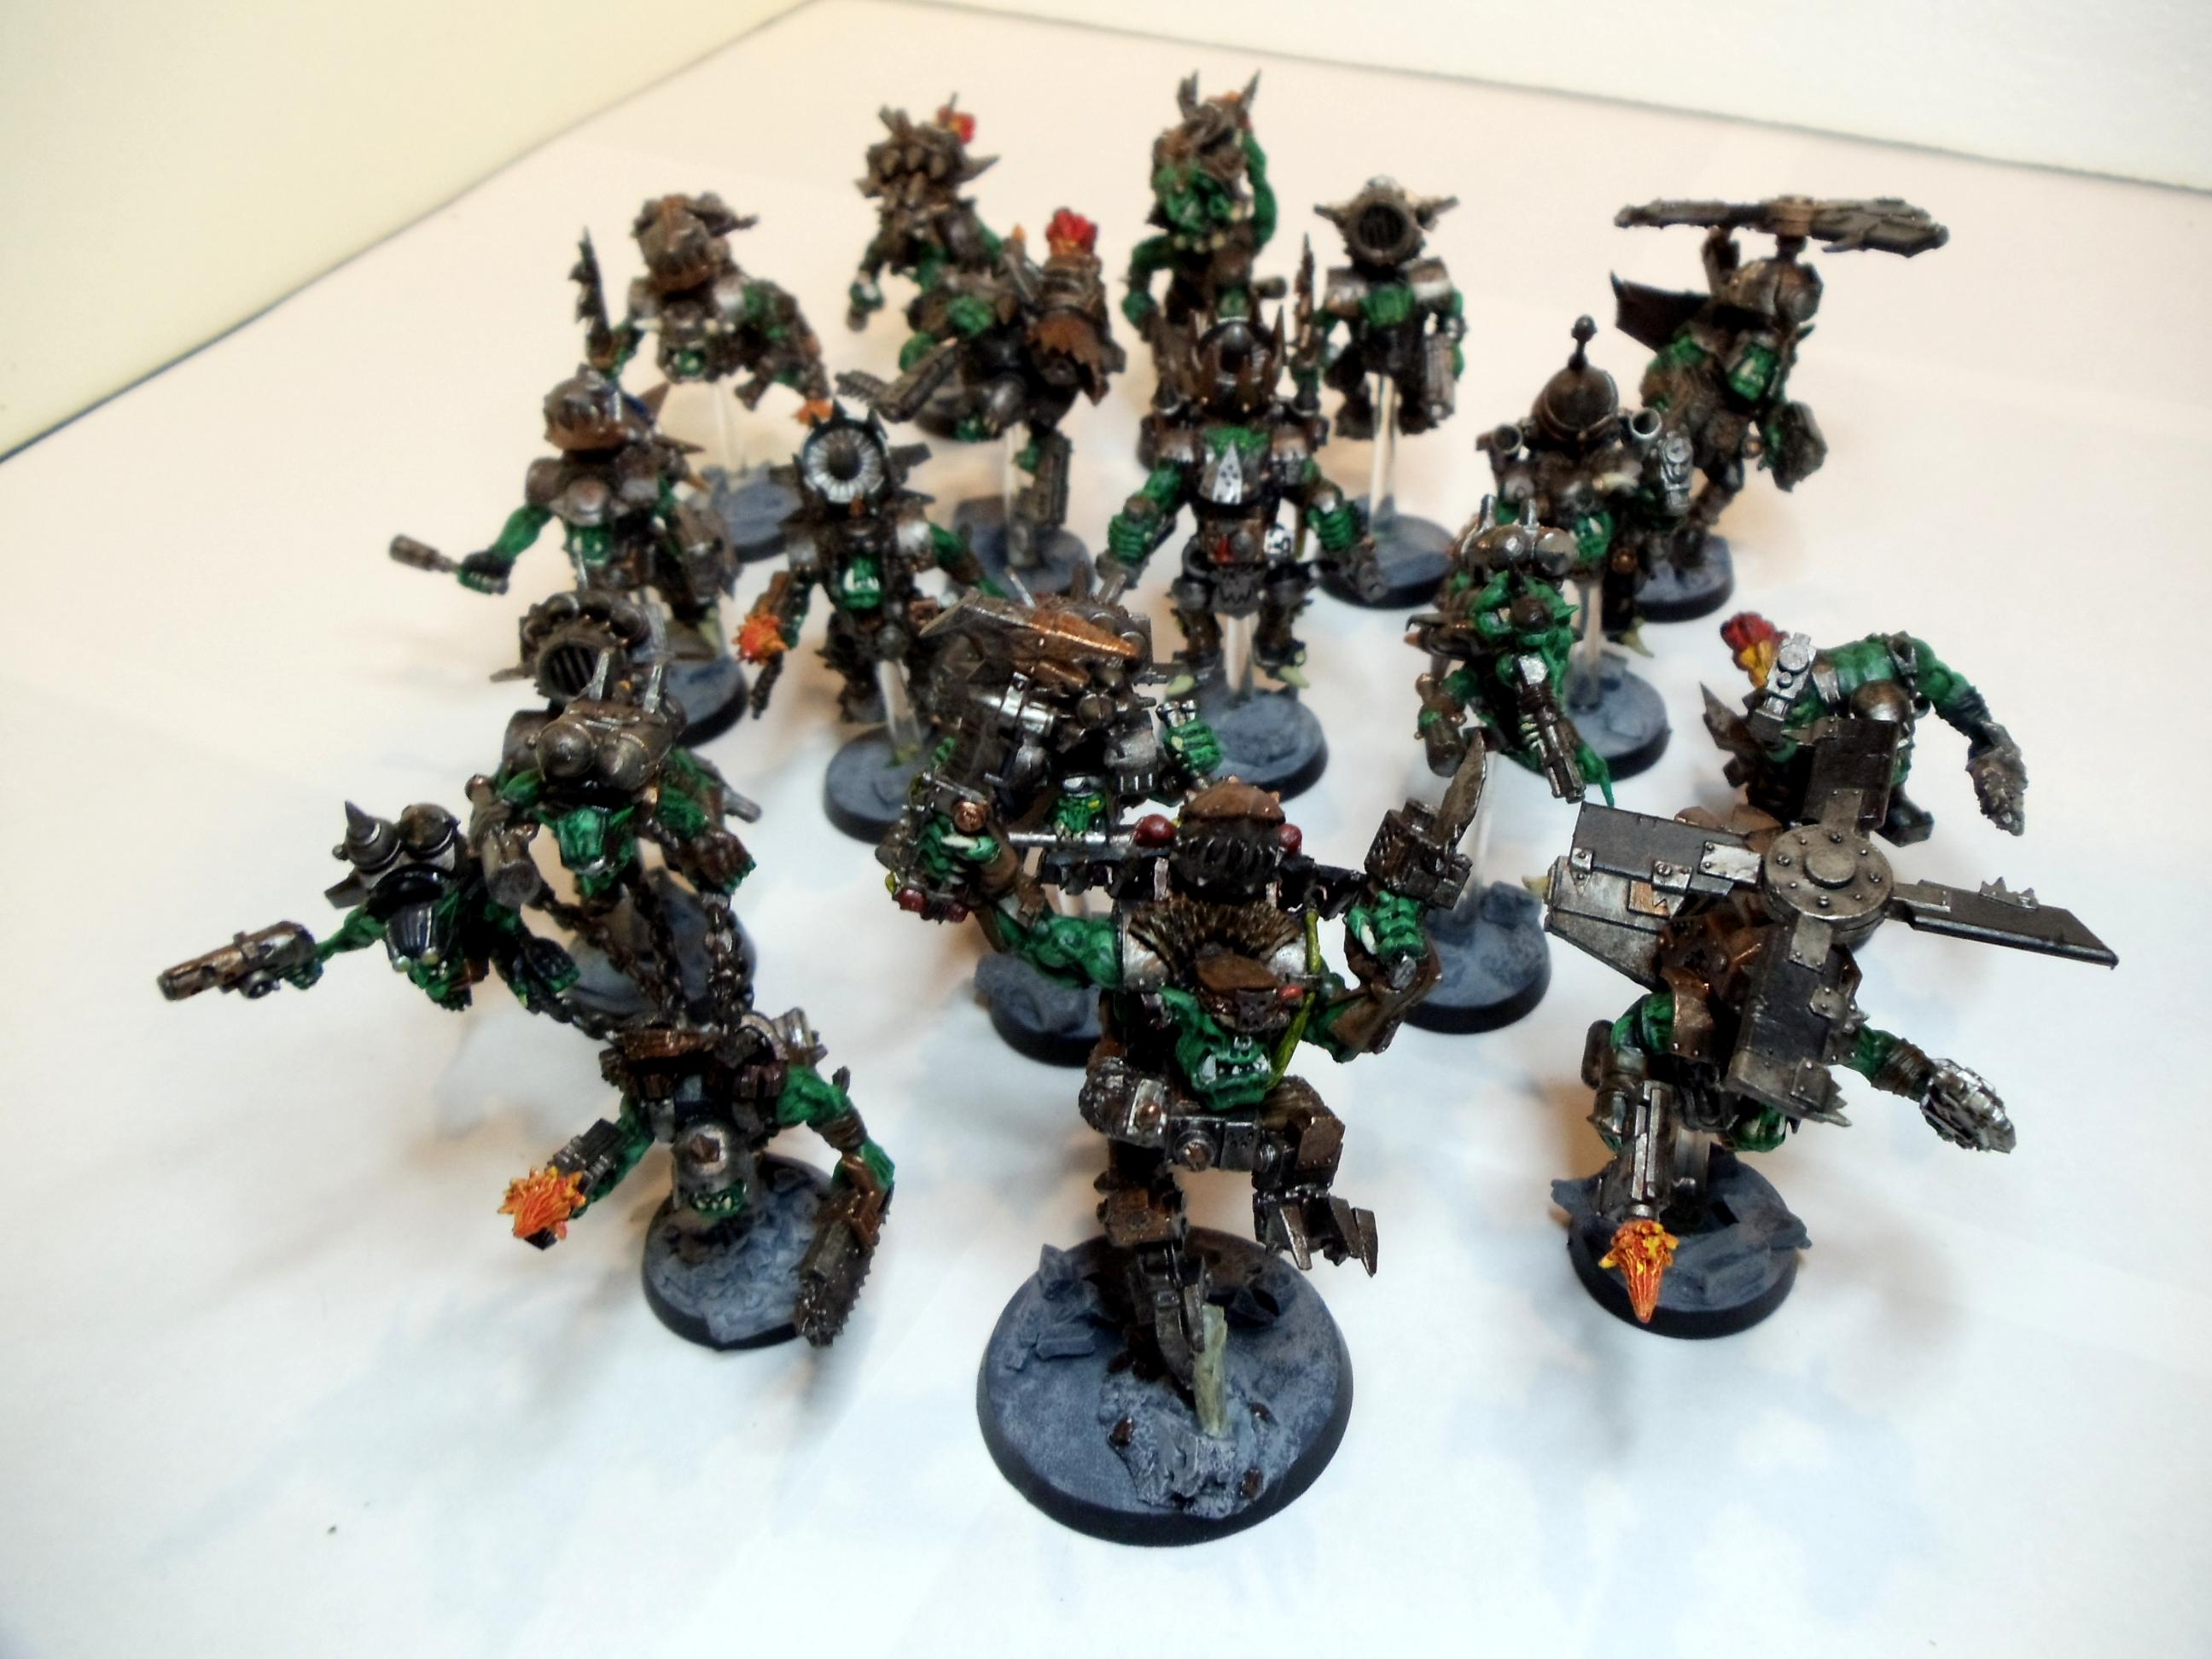 Flying, Orks, Stormboy, Stormboyz